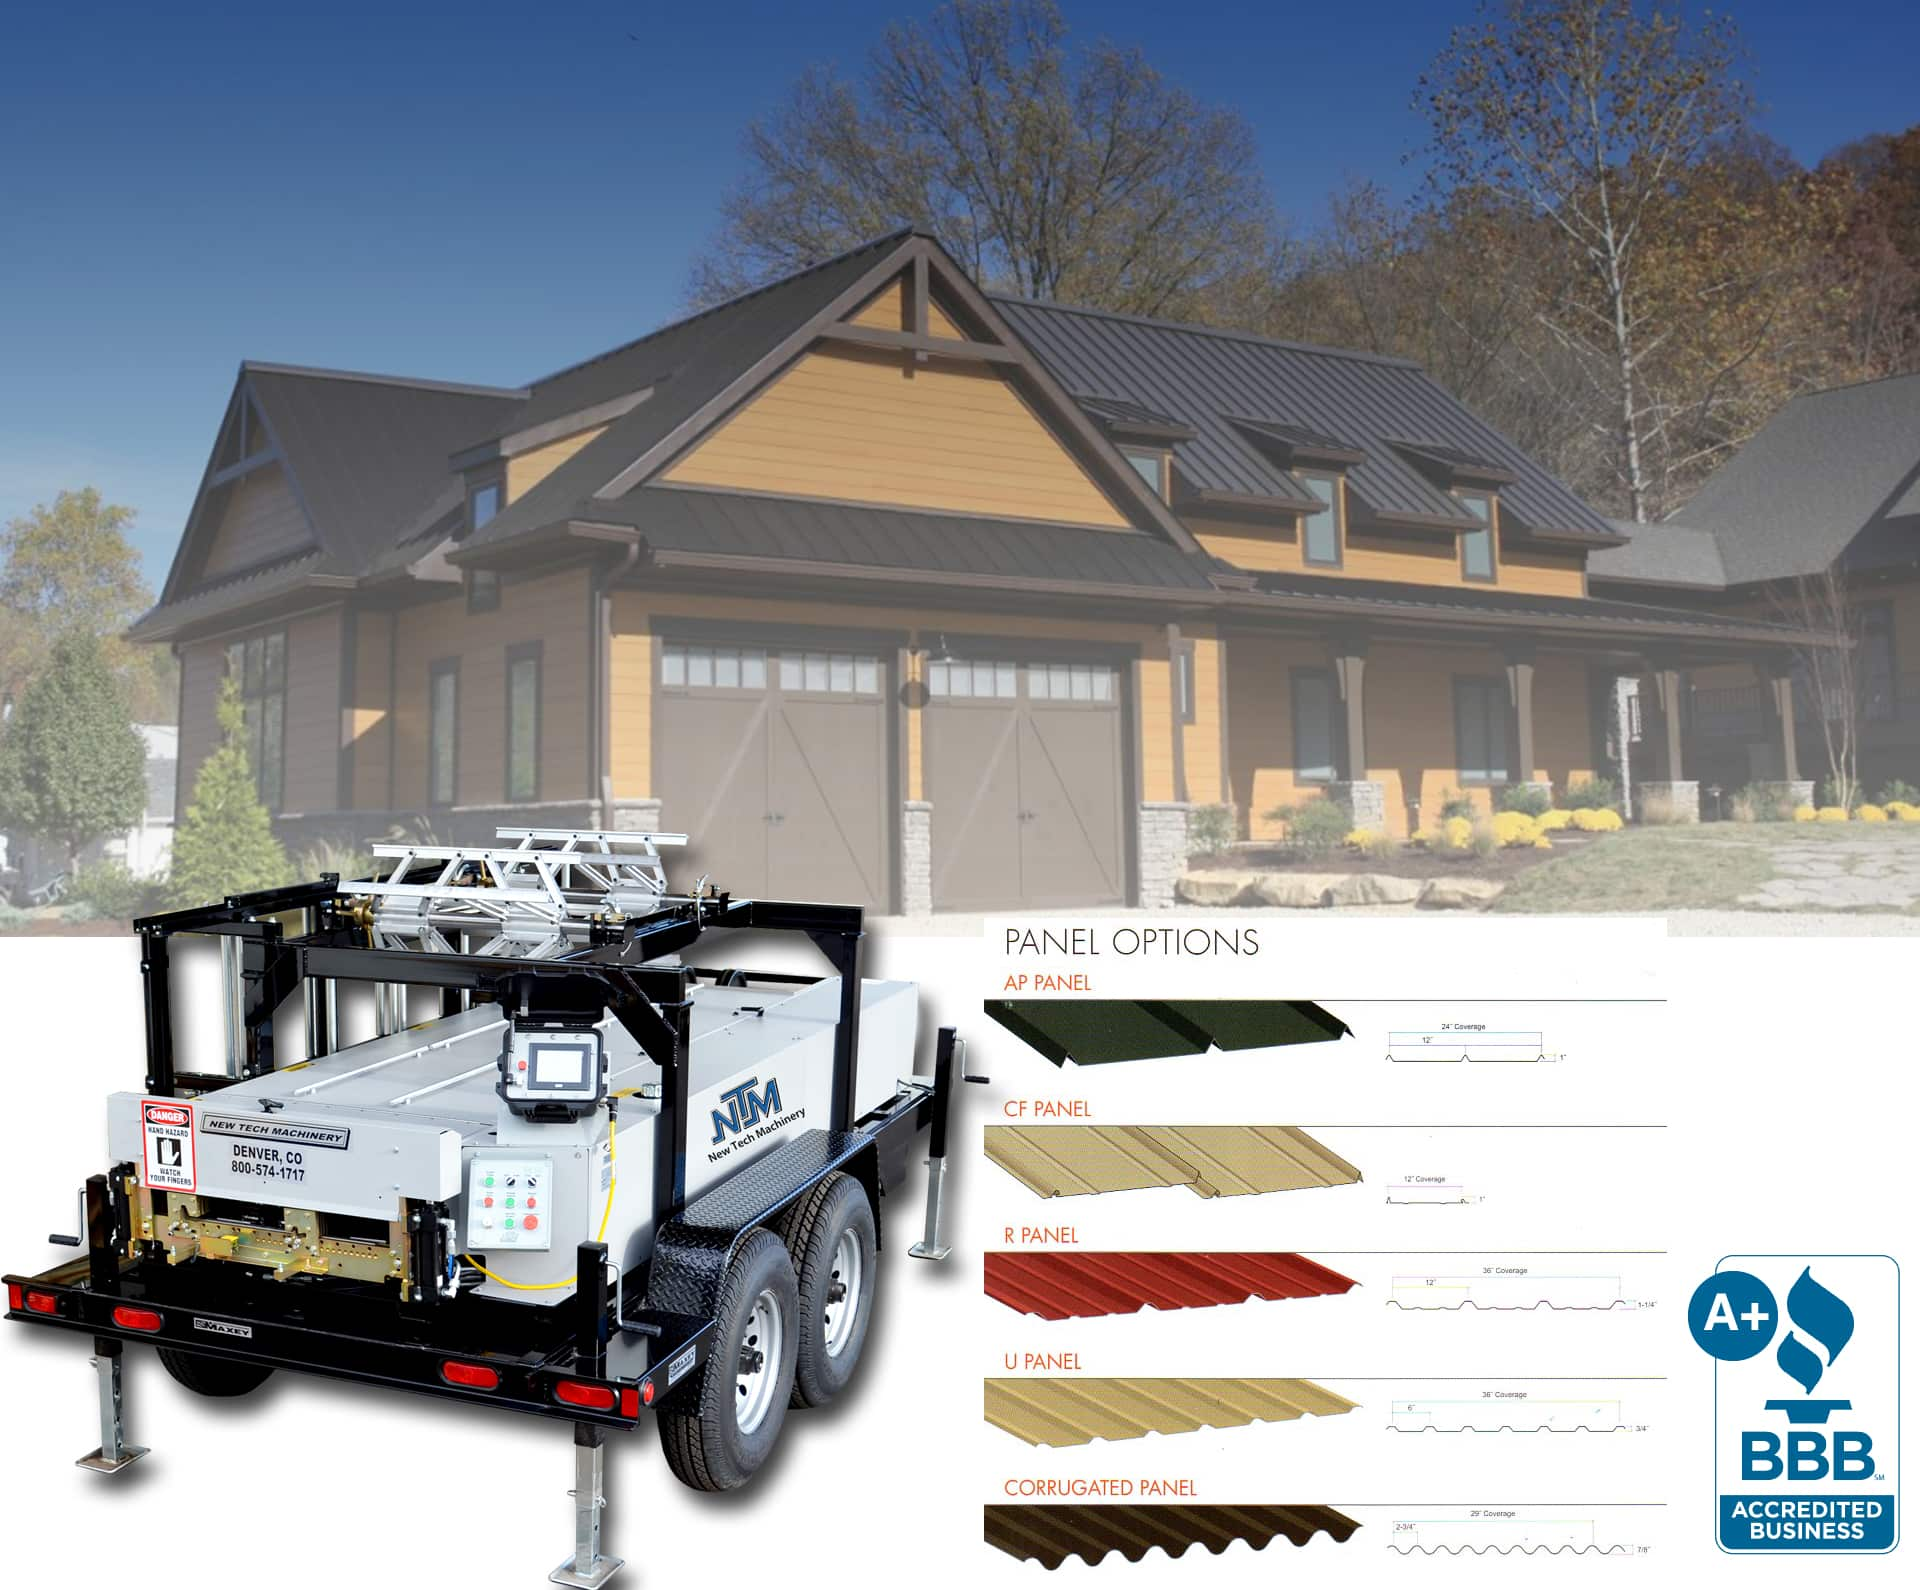 Denver Roofing And Gutters